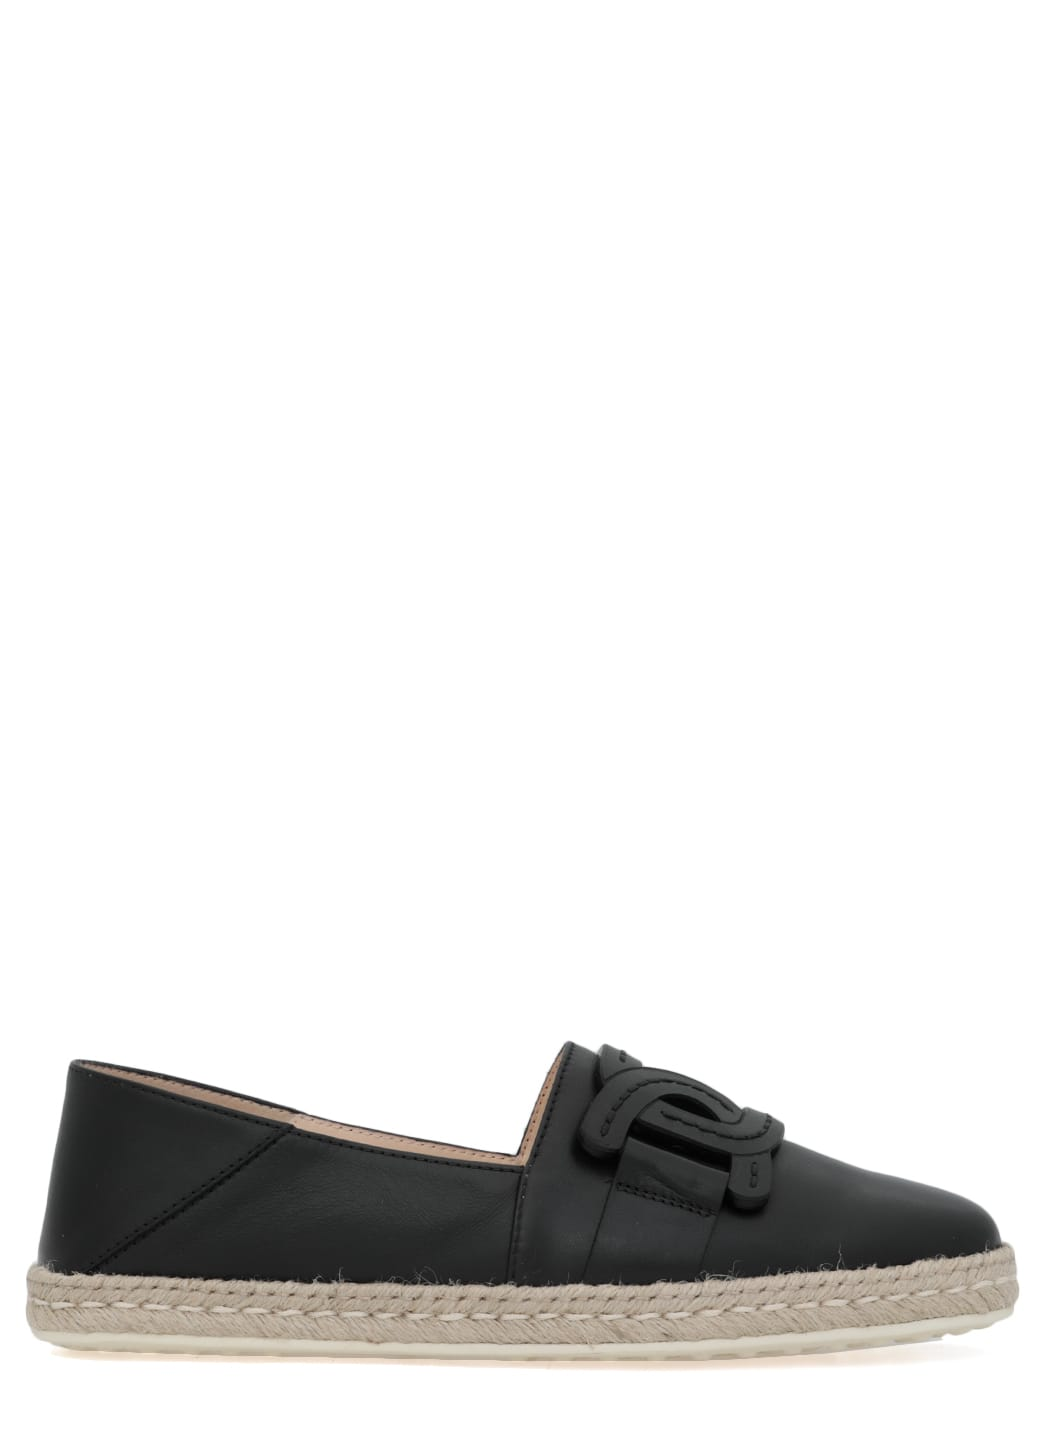 Buy Tods Leather Slip-on online, shop Tods shoes with free shipping